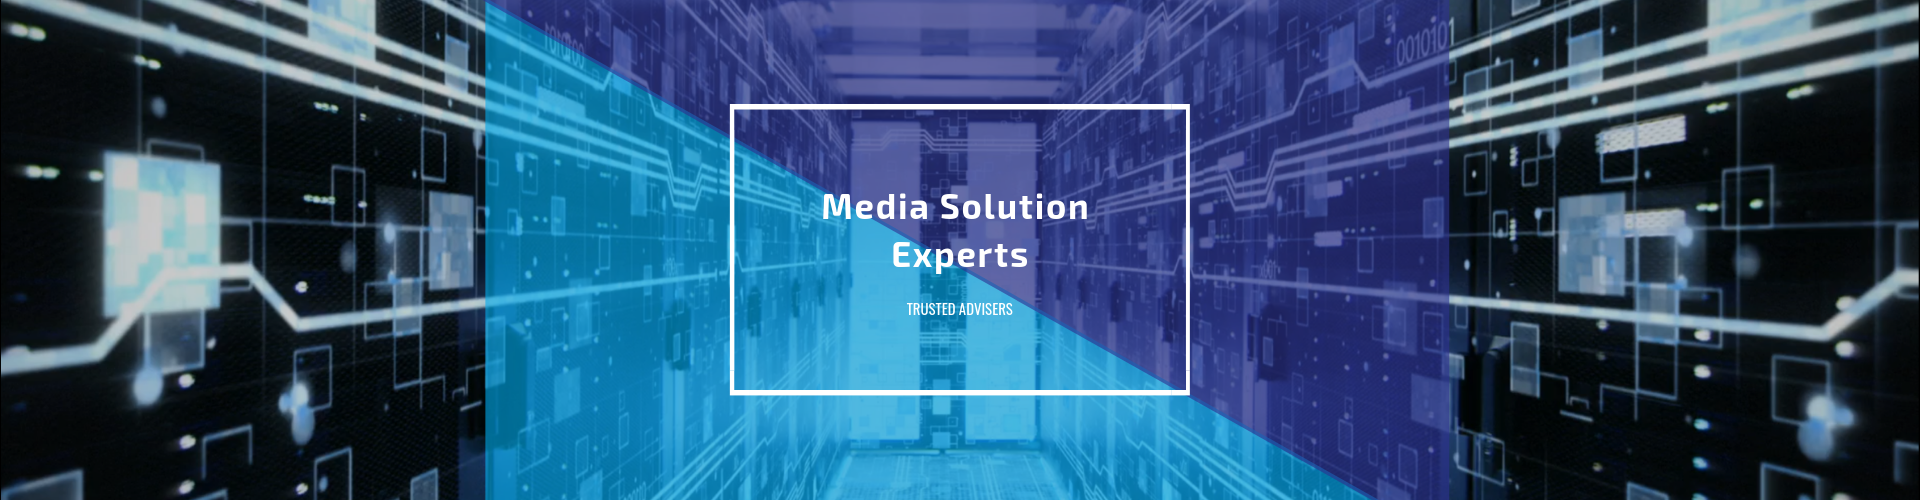 Digital Media Solution Experts